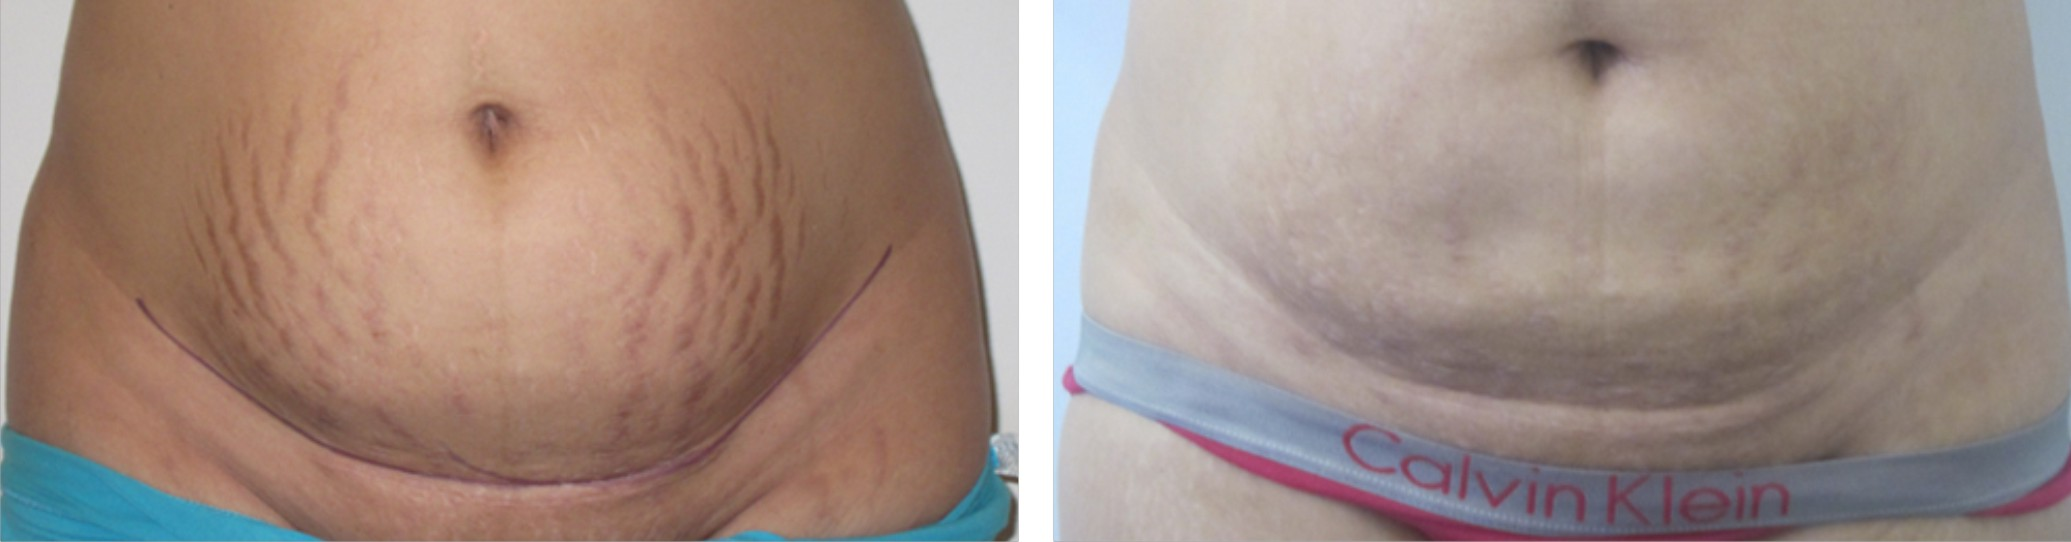 Stretch Marks Image Two